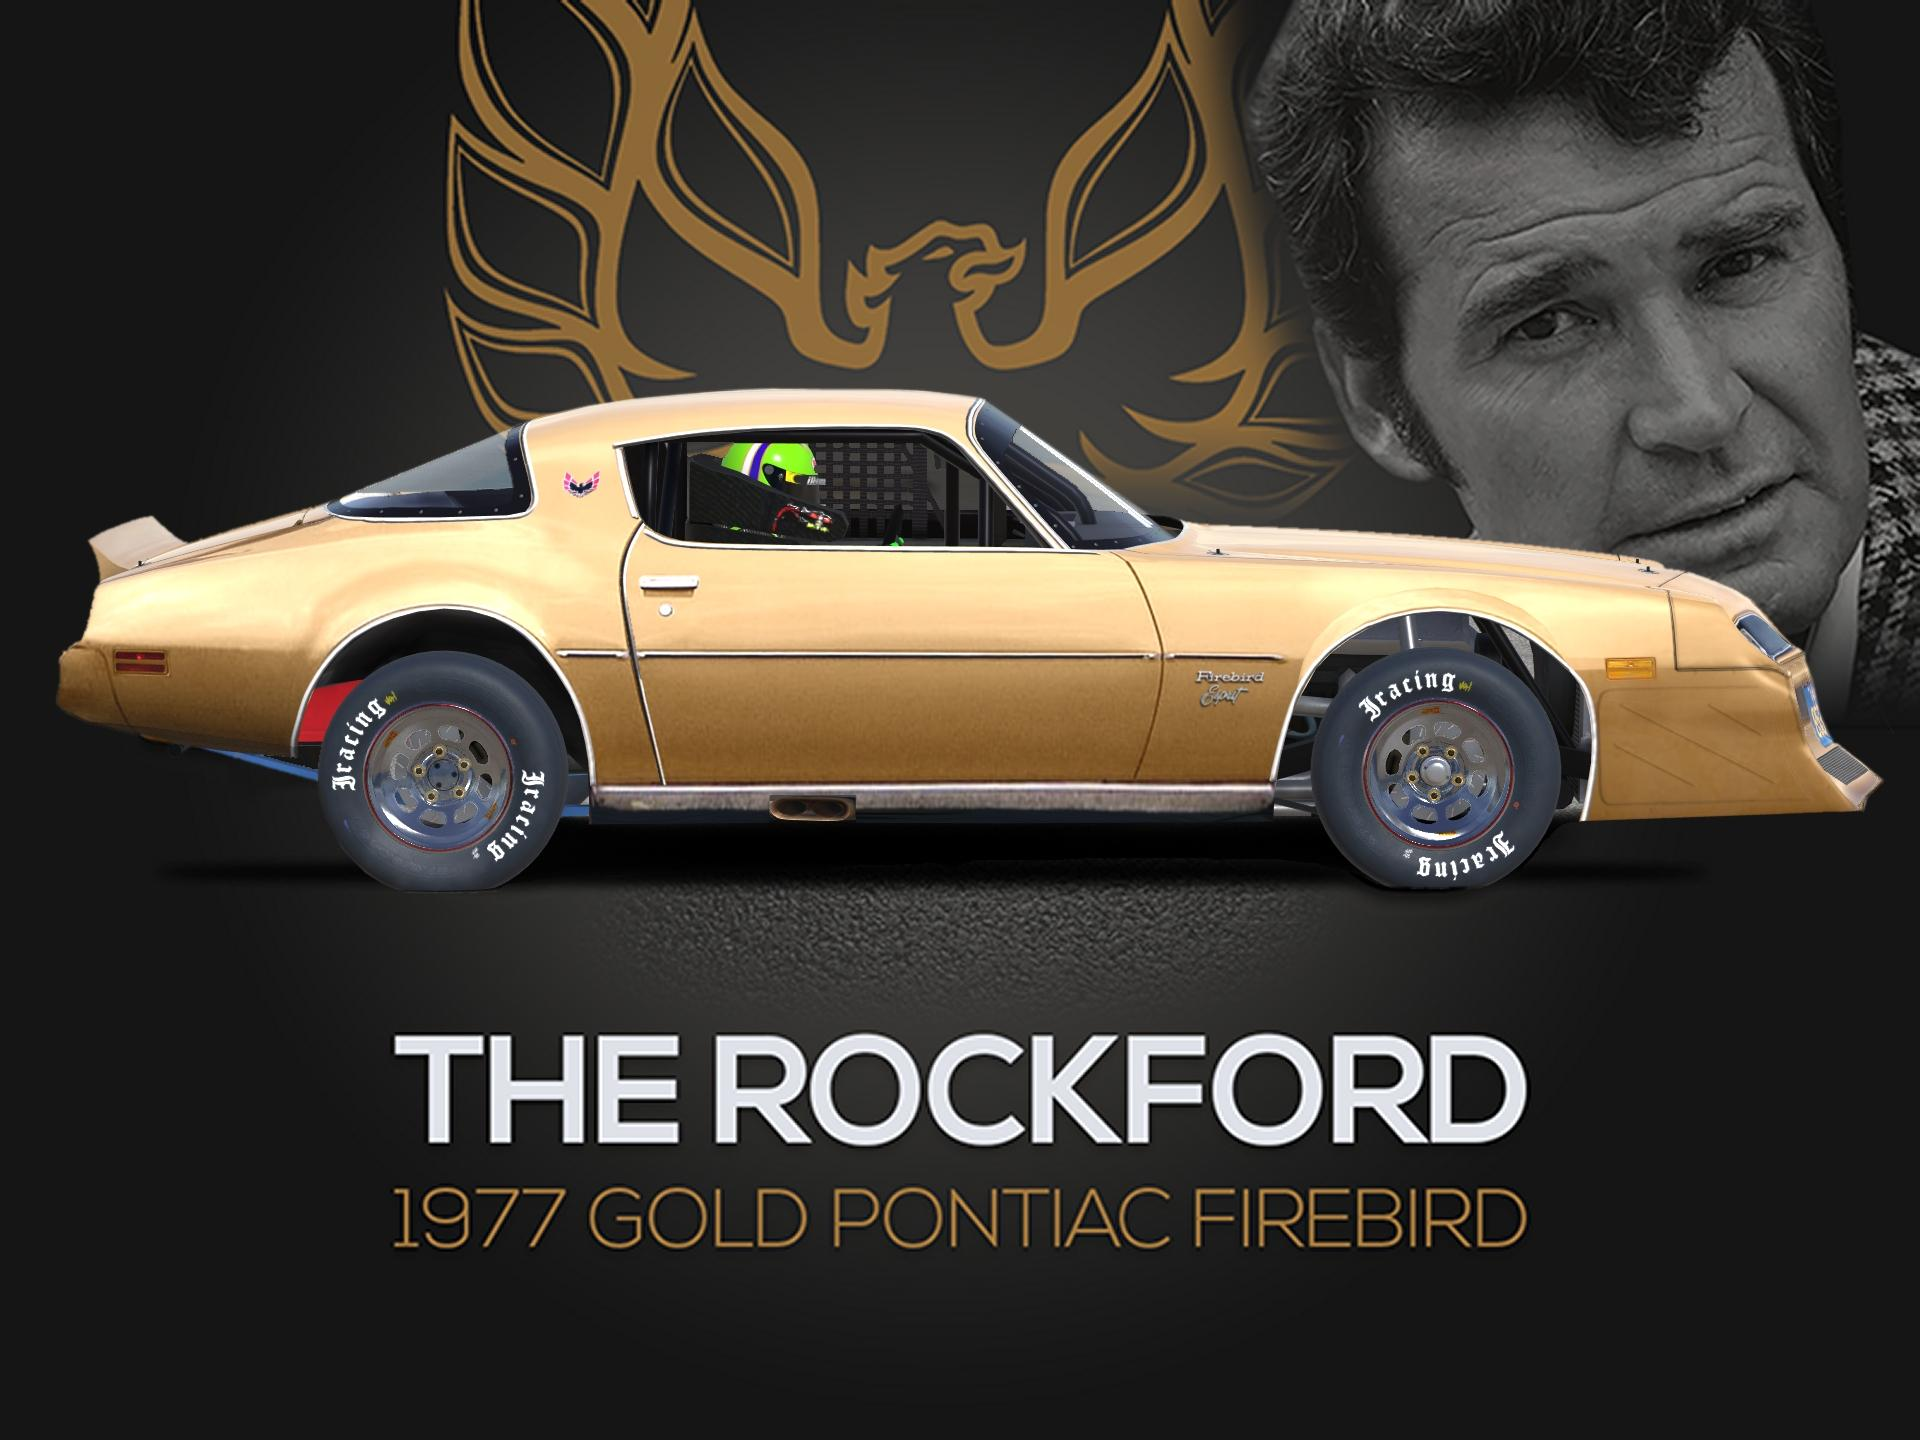 Preview of Street Stock Rockford by Don Craig